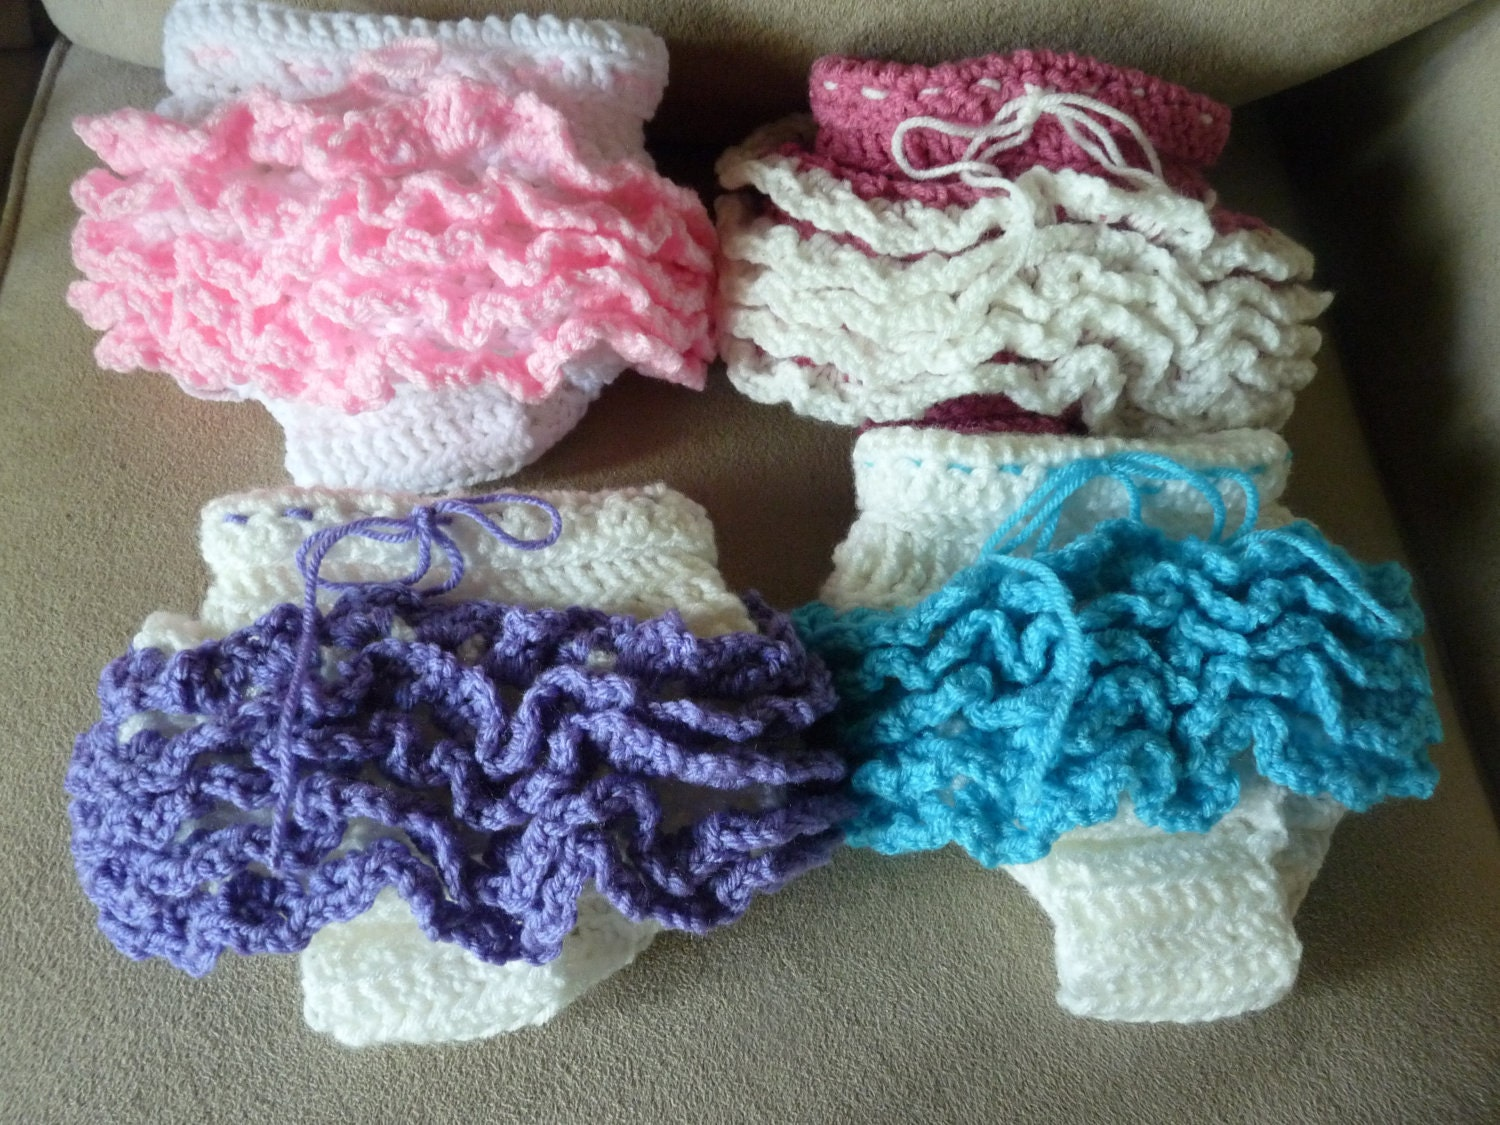 Free Crochet Pattern Diaper Cover With Ruffles : Items similar to Ruffle Crochet Diaper Cover on Etsy